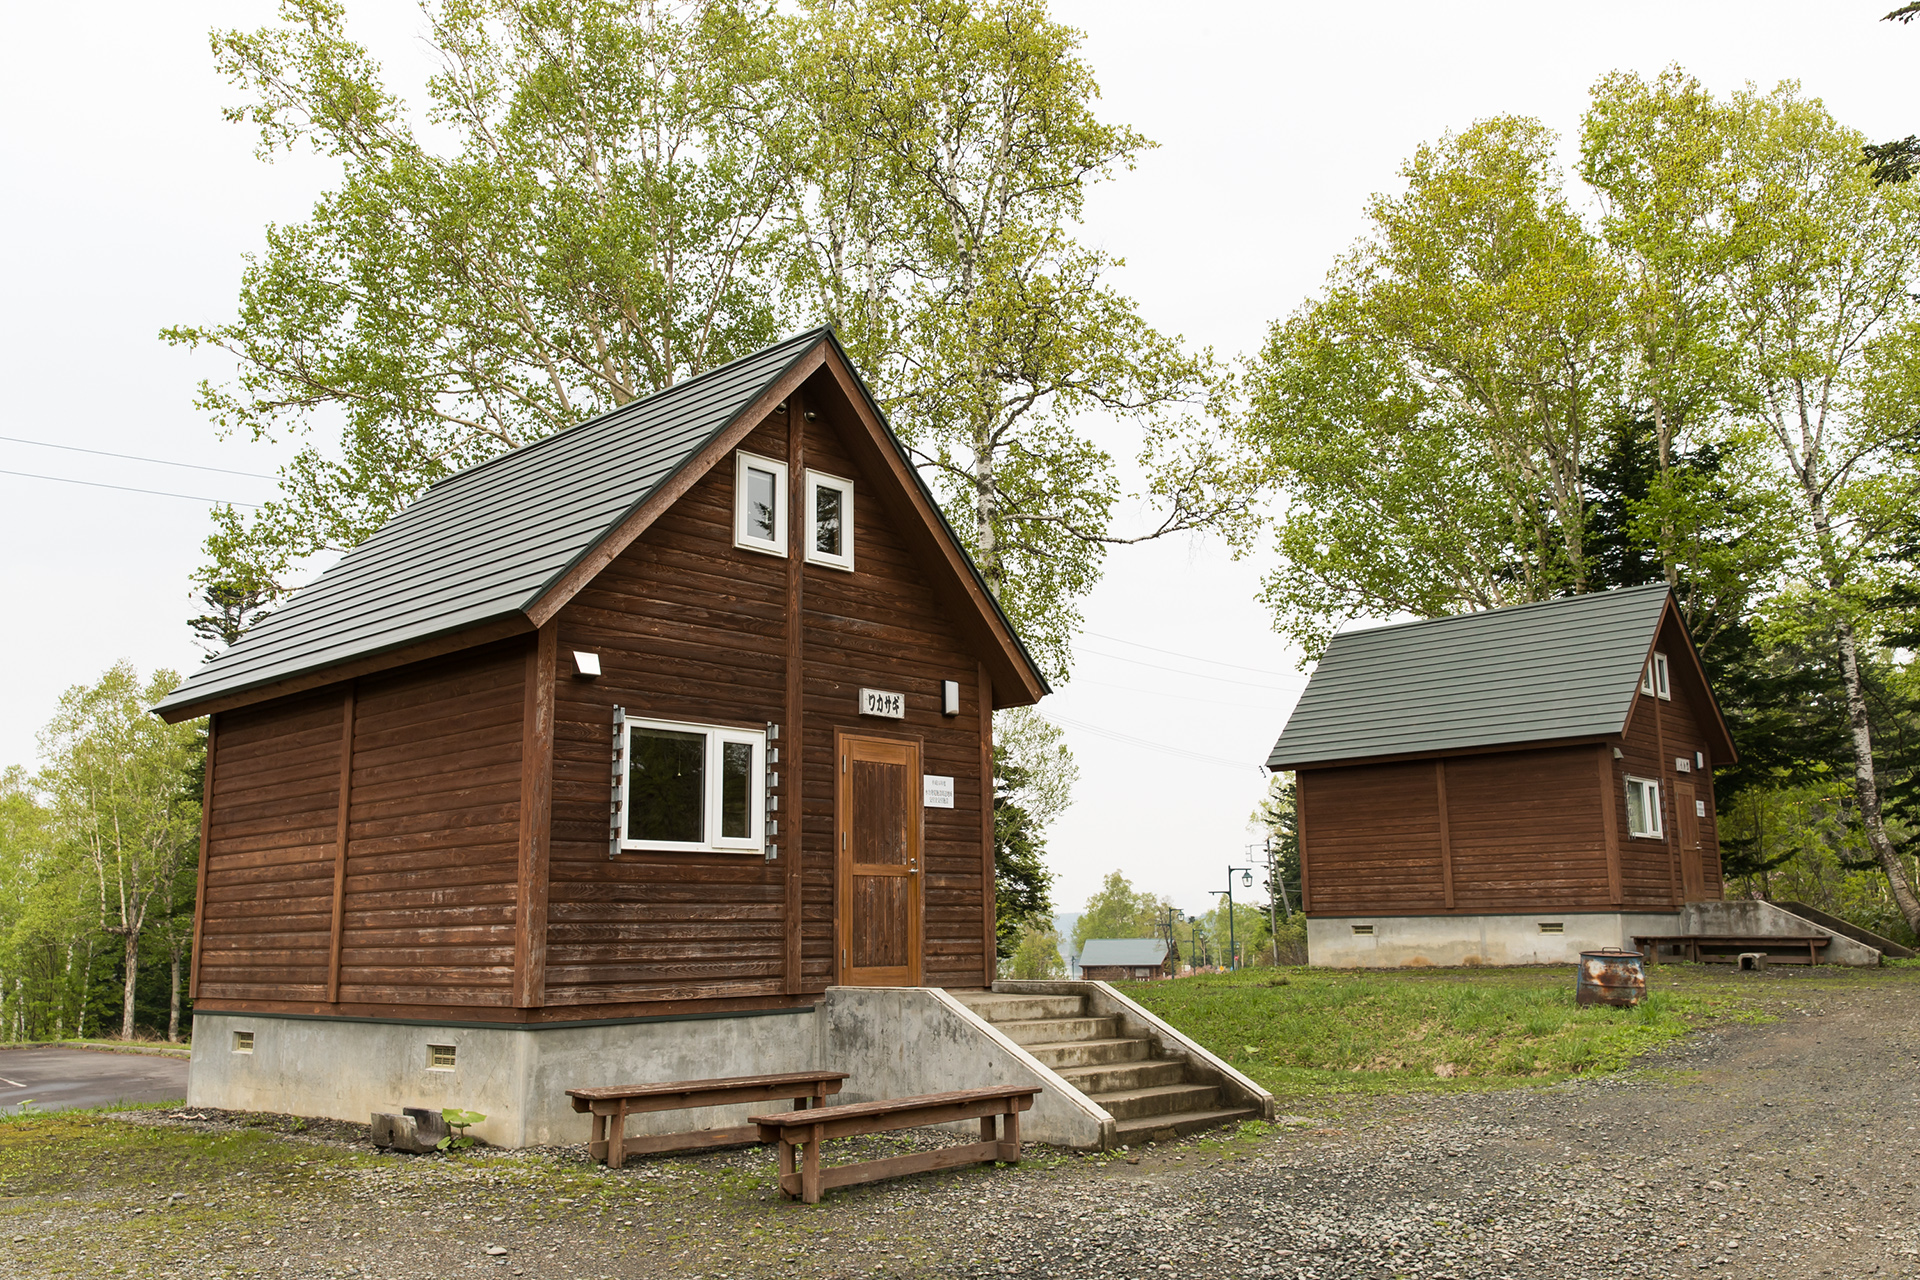 Come and enjoy your stay in the log cabins with your friends and family!